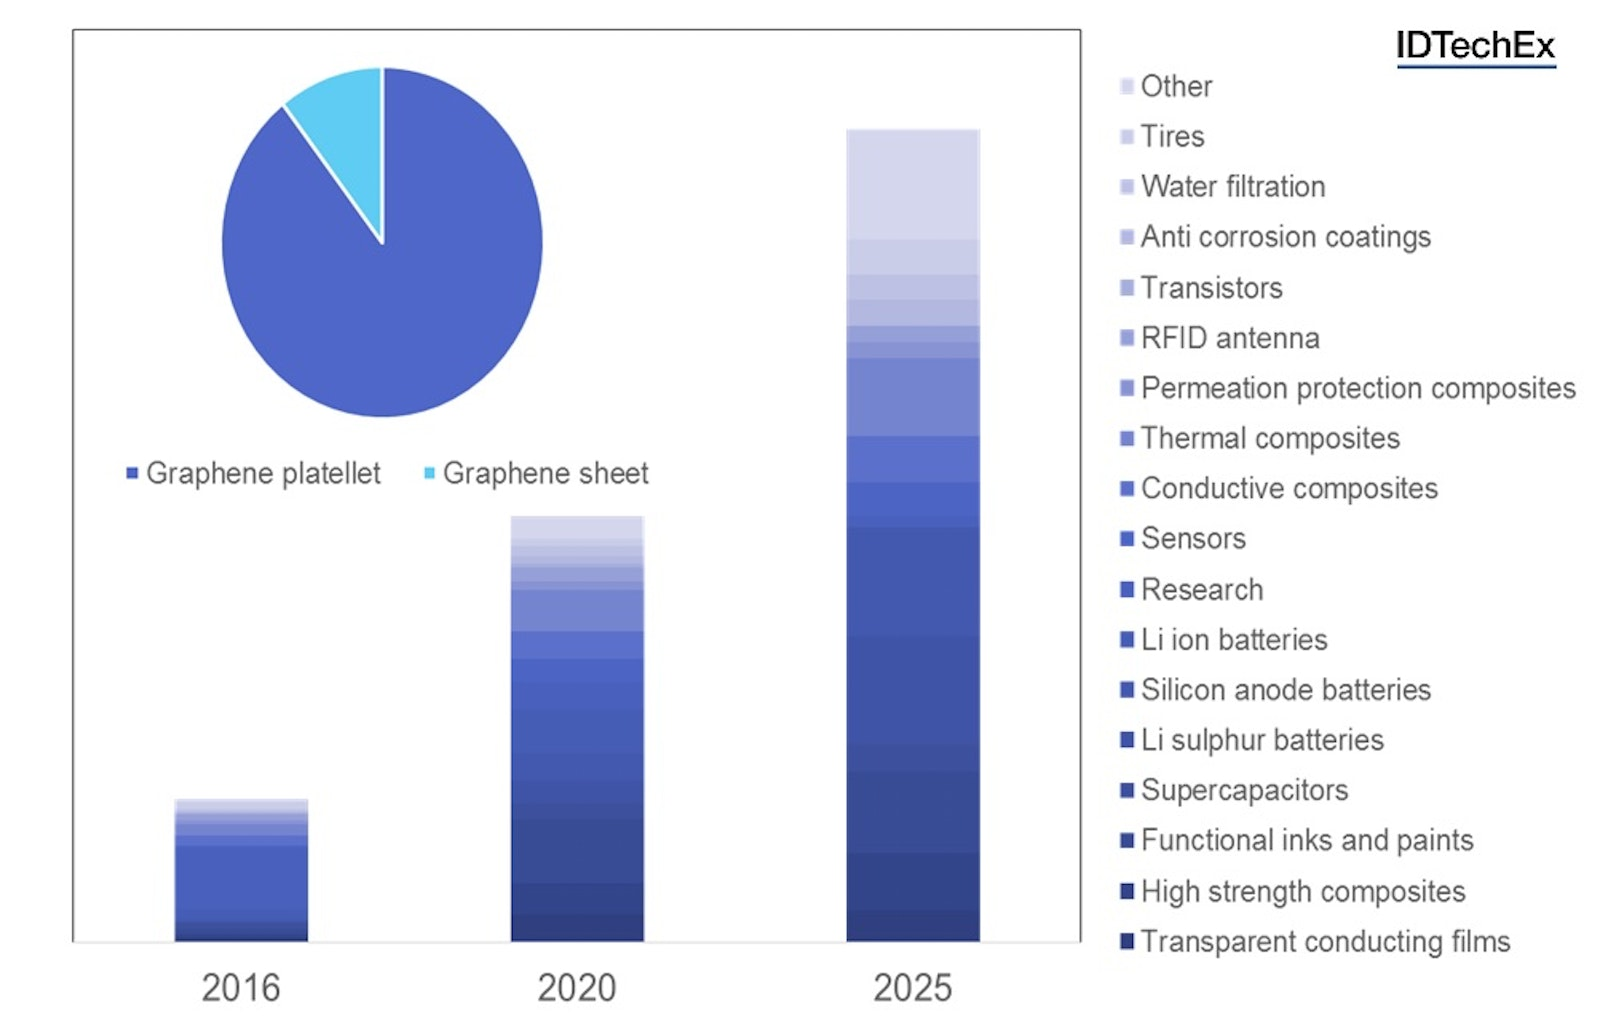 The graphene market to reach 3,800 tonnes per year in 2026